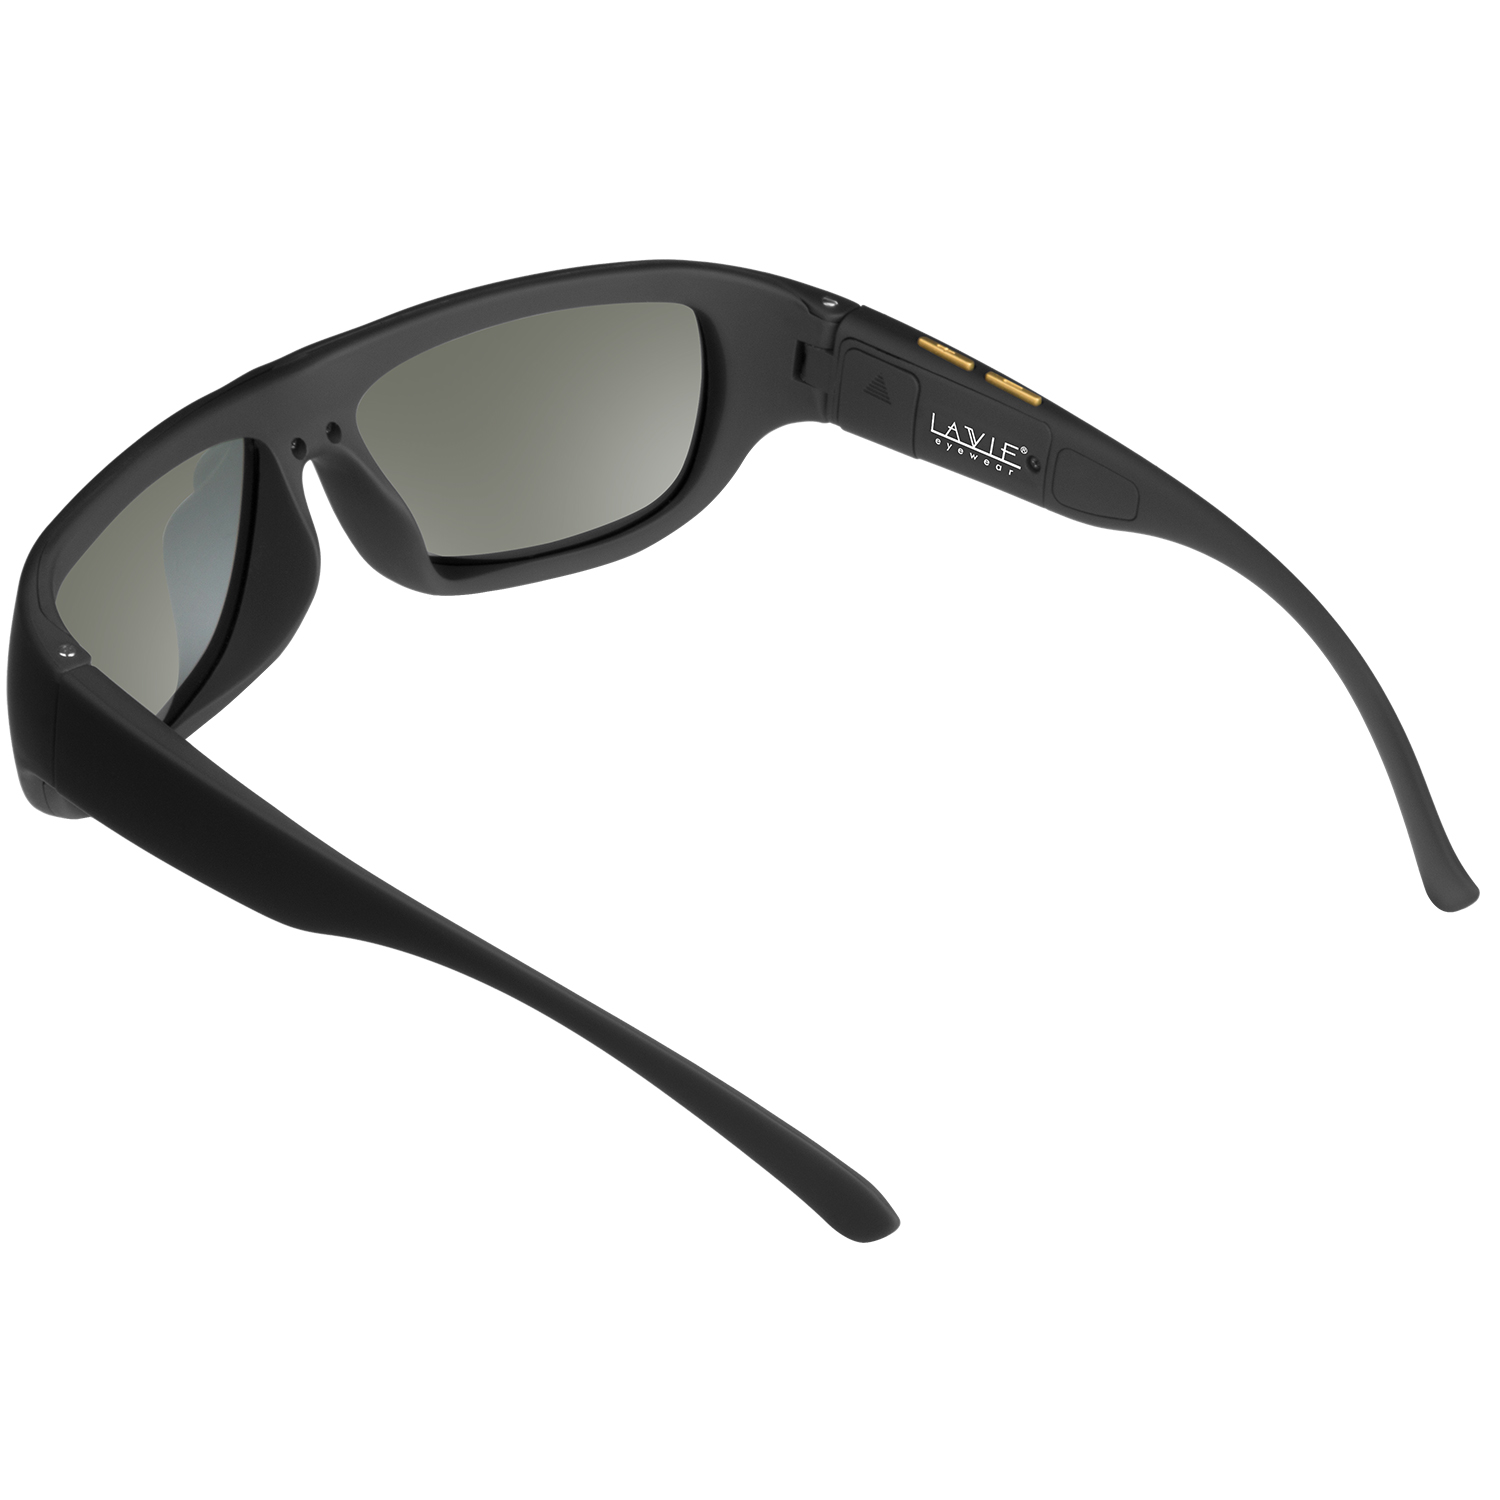 Dimming Sunglasses with Variable Electronic Tint Control  Men Sport Sun Glasses LCD